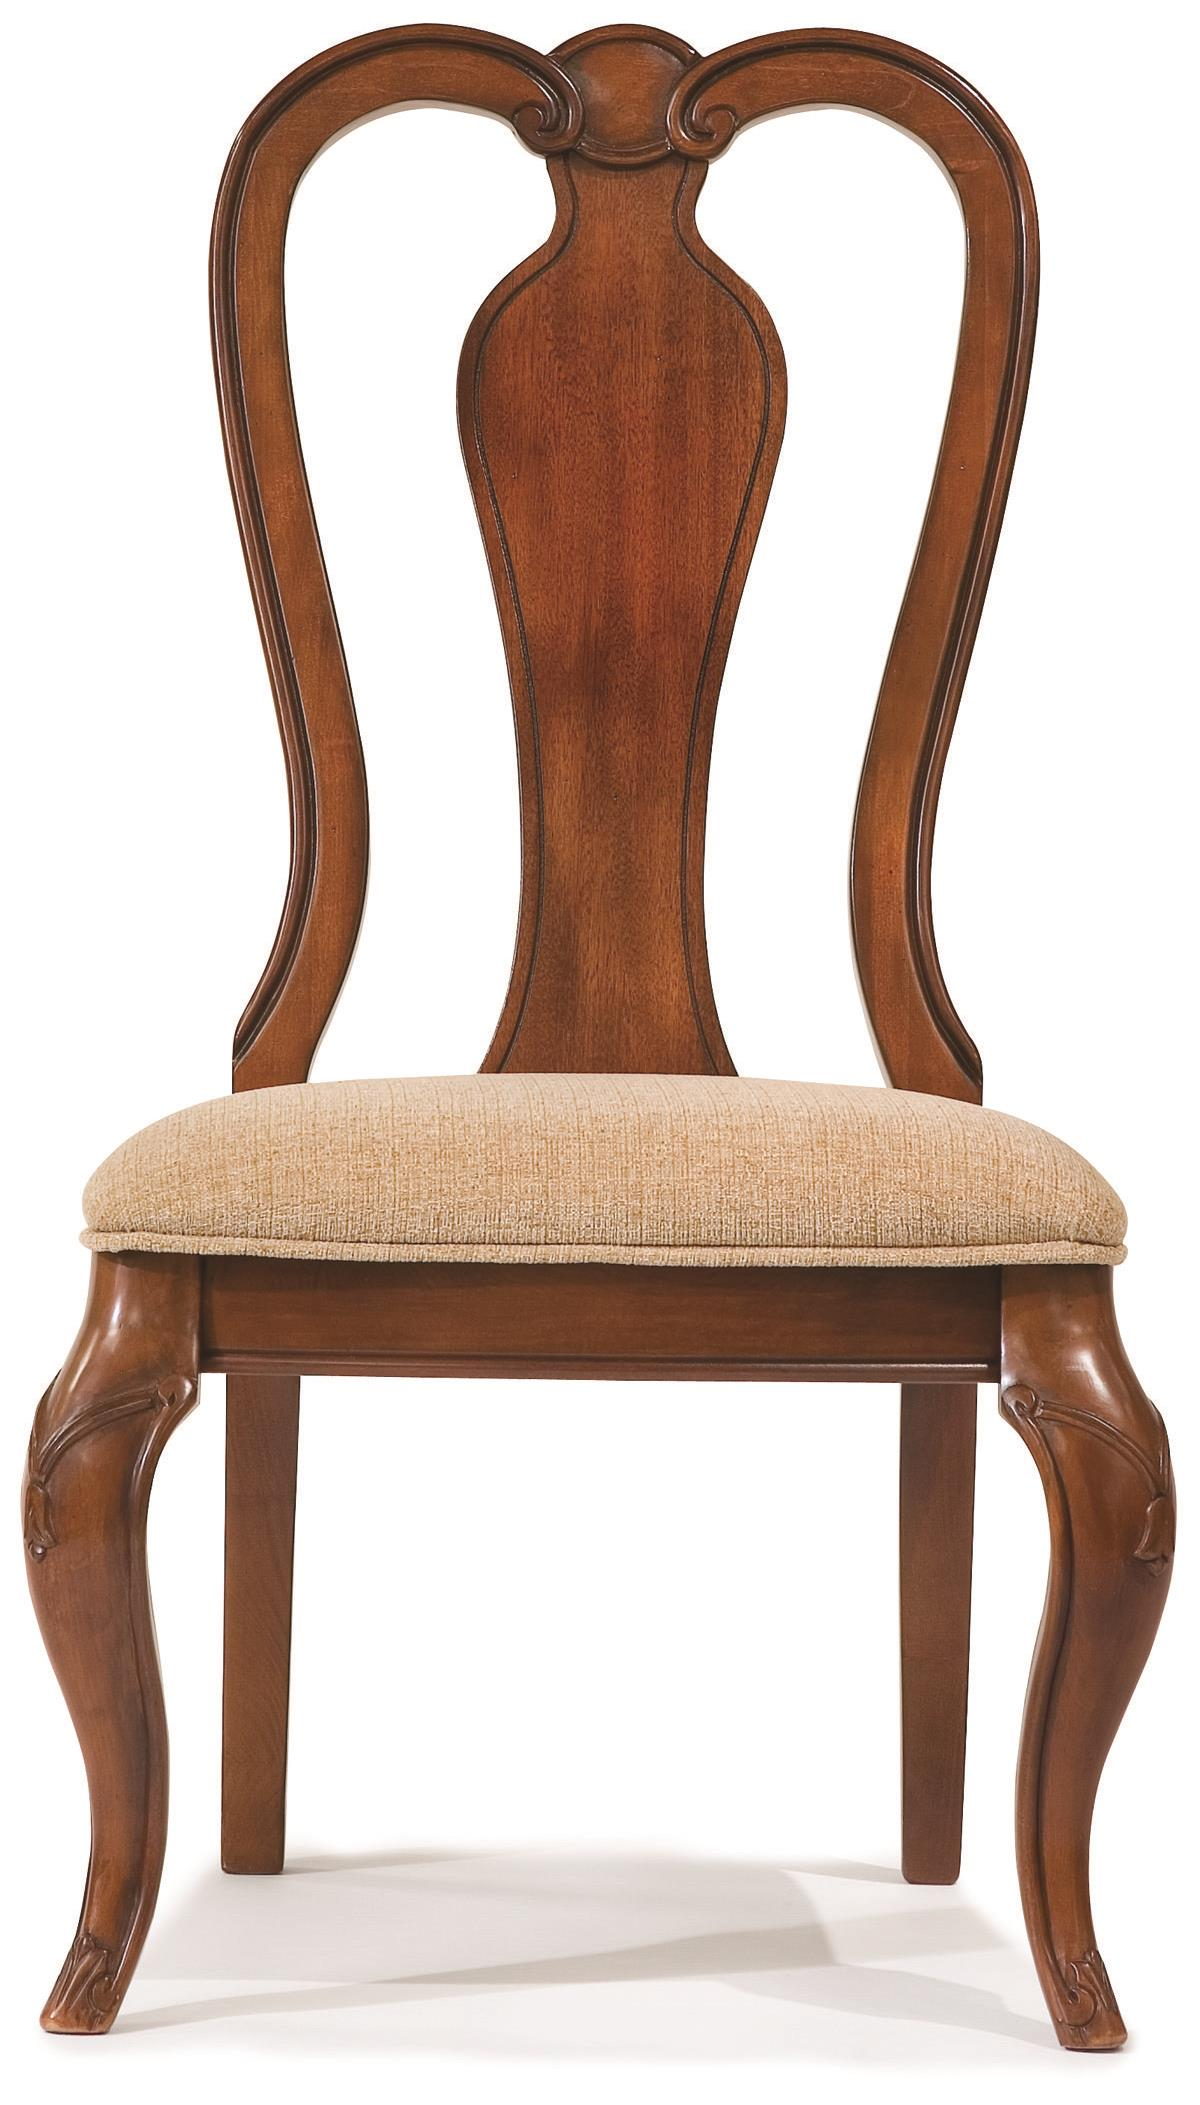 Queen anne side chair with upholstered seat by legacy for Queen anne furniture